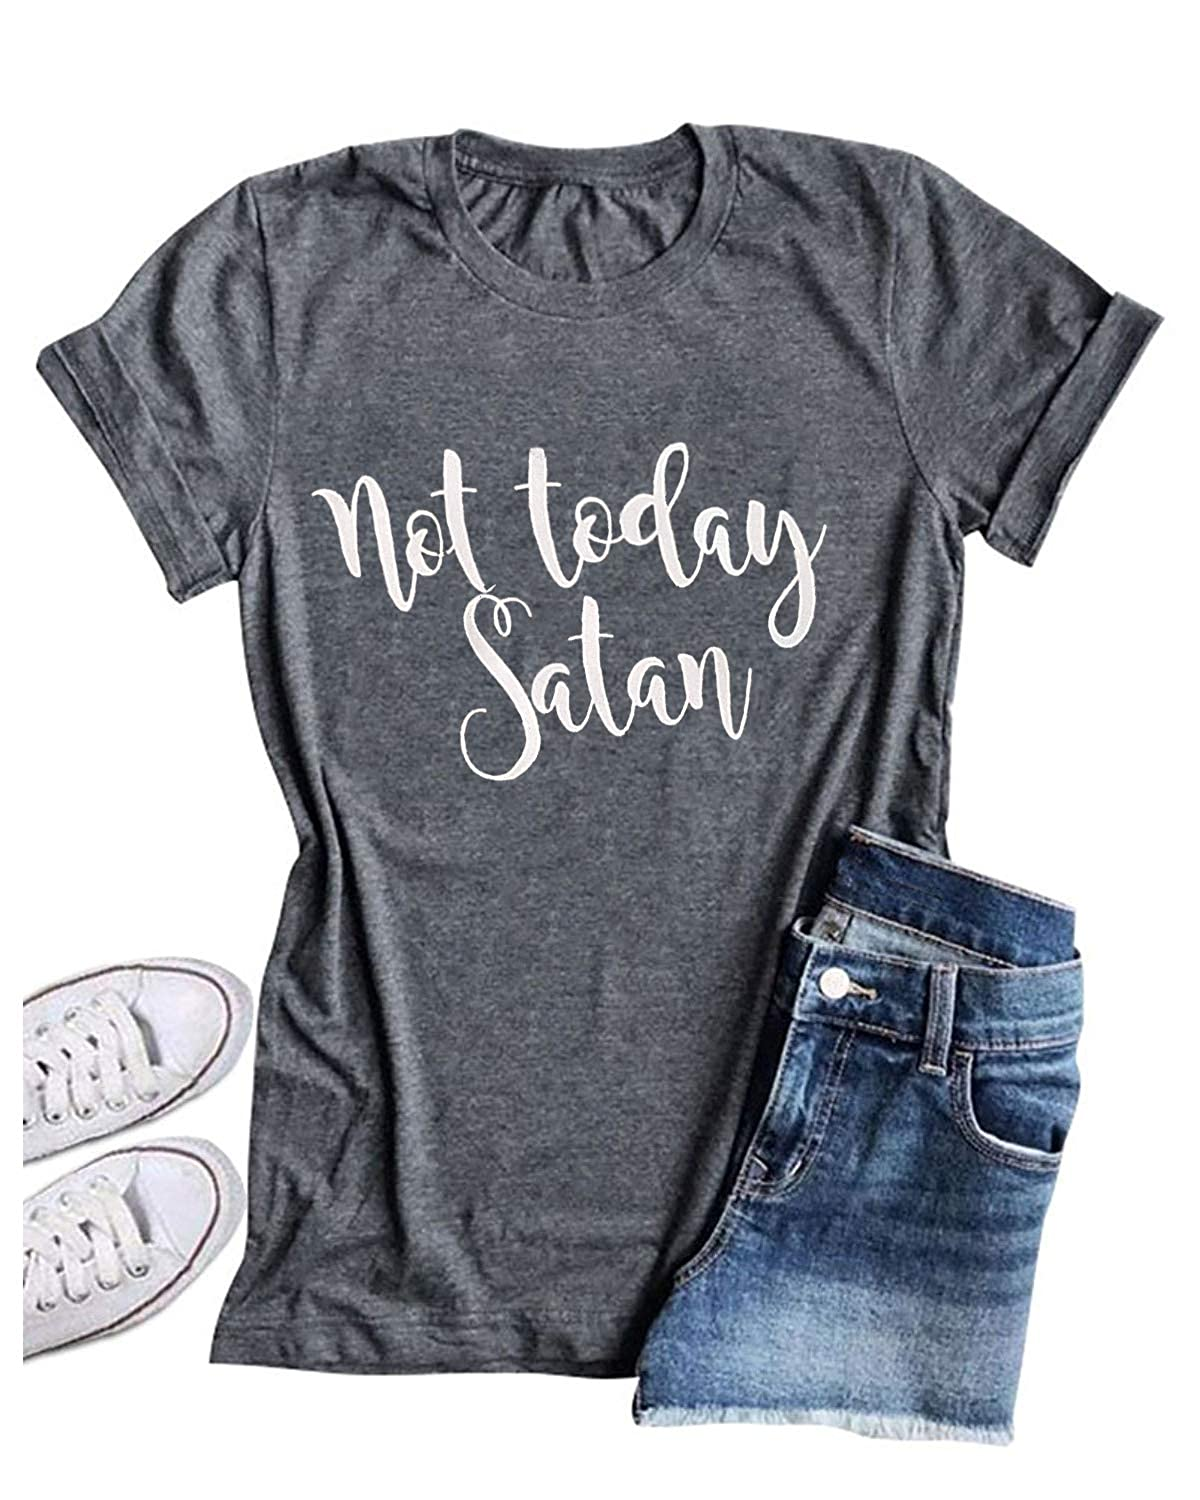 c8cf4905 Enmeng Womens Causal Not Today Satan Printed T-shirt Christian Graphic Tees  Normally 1-5 days via Fulfilled by Amazon or 7-14 days via merchant  shipping.